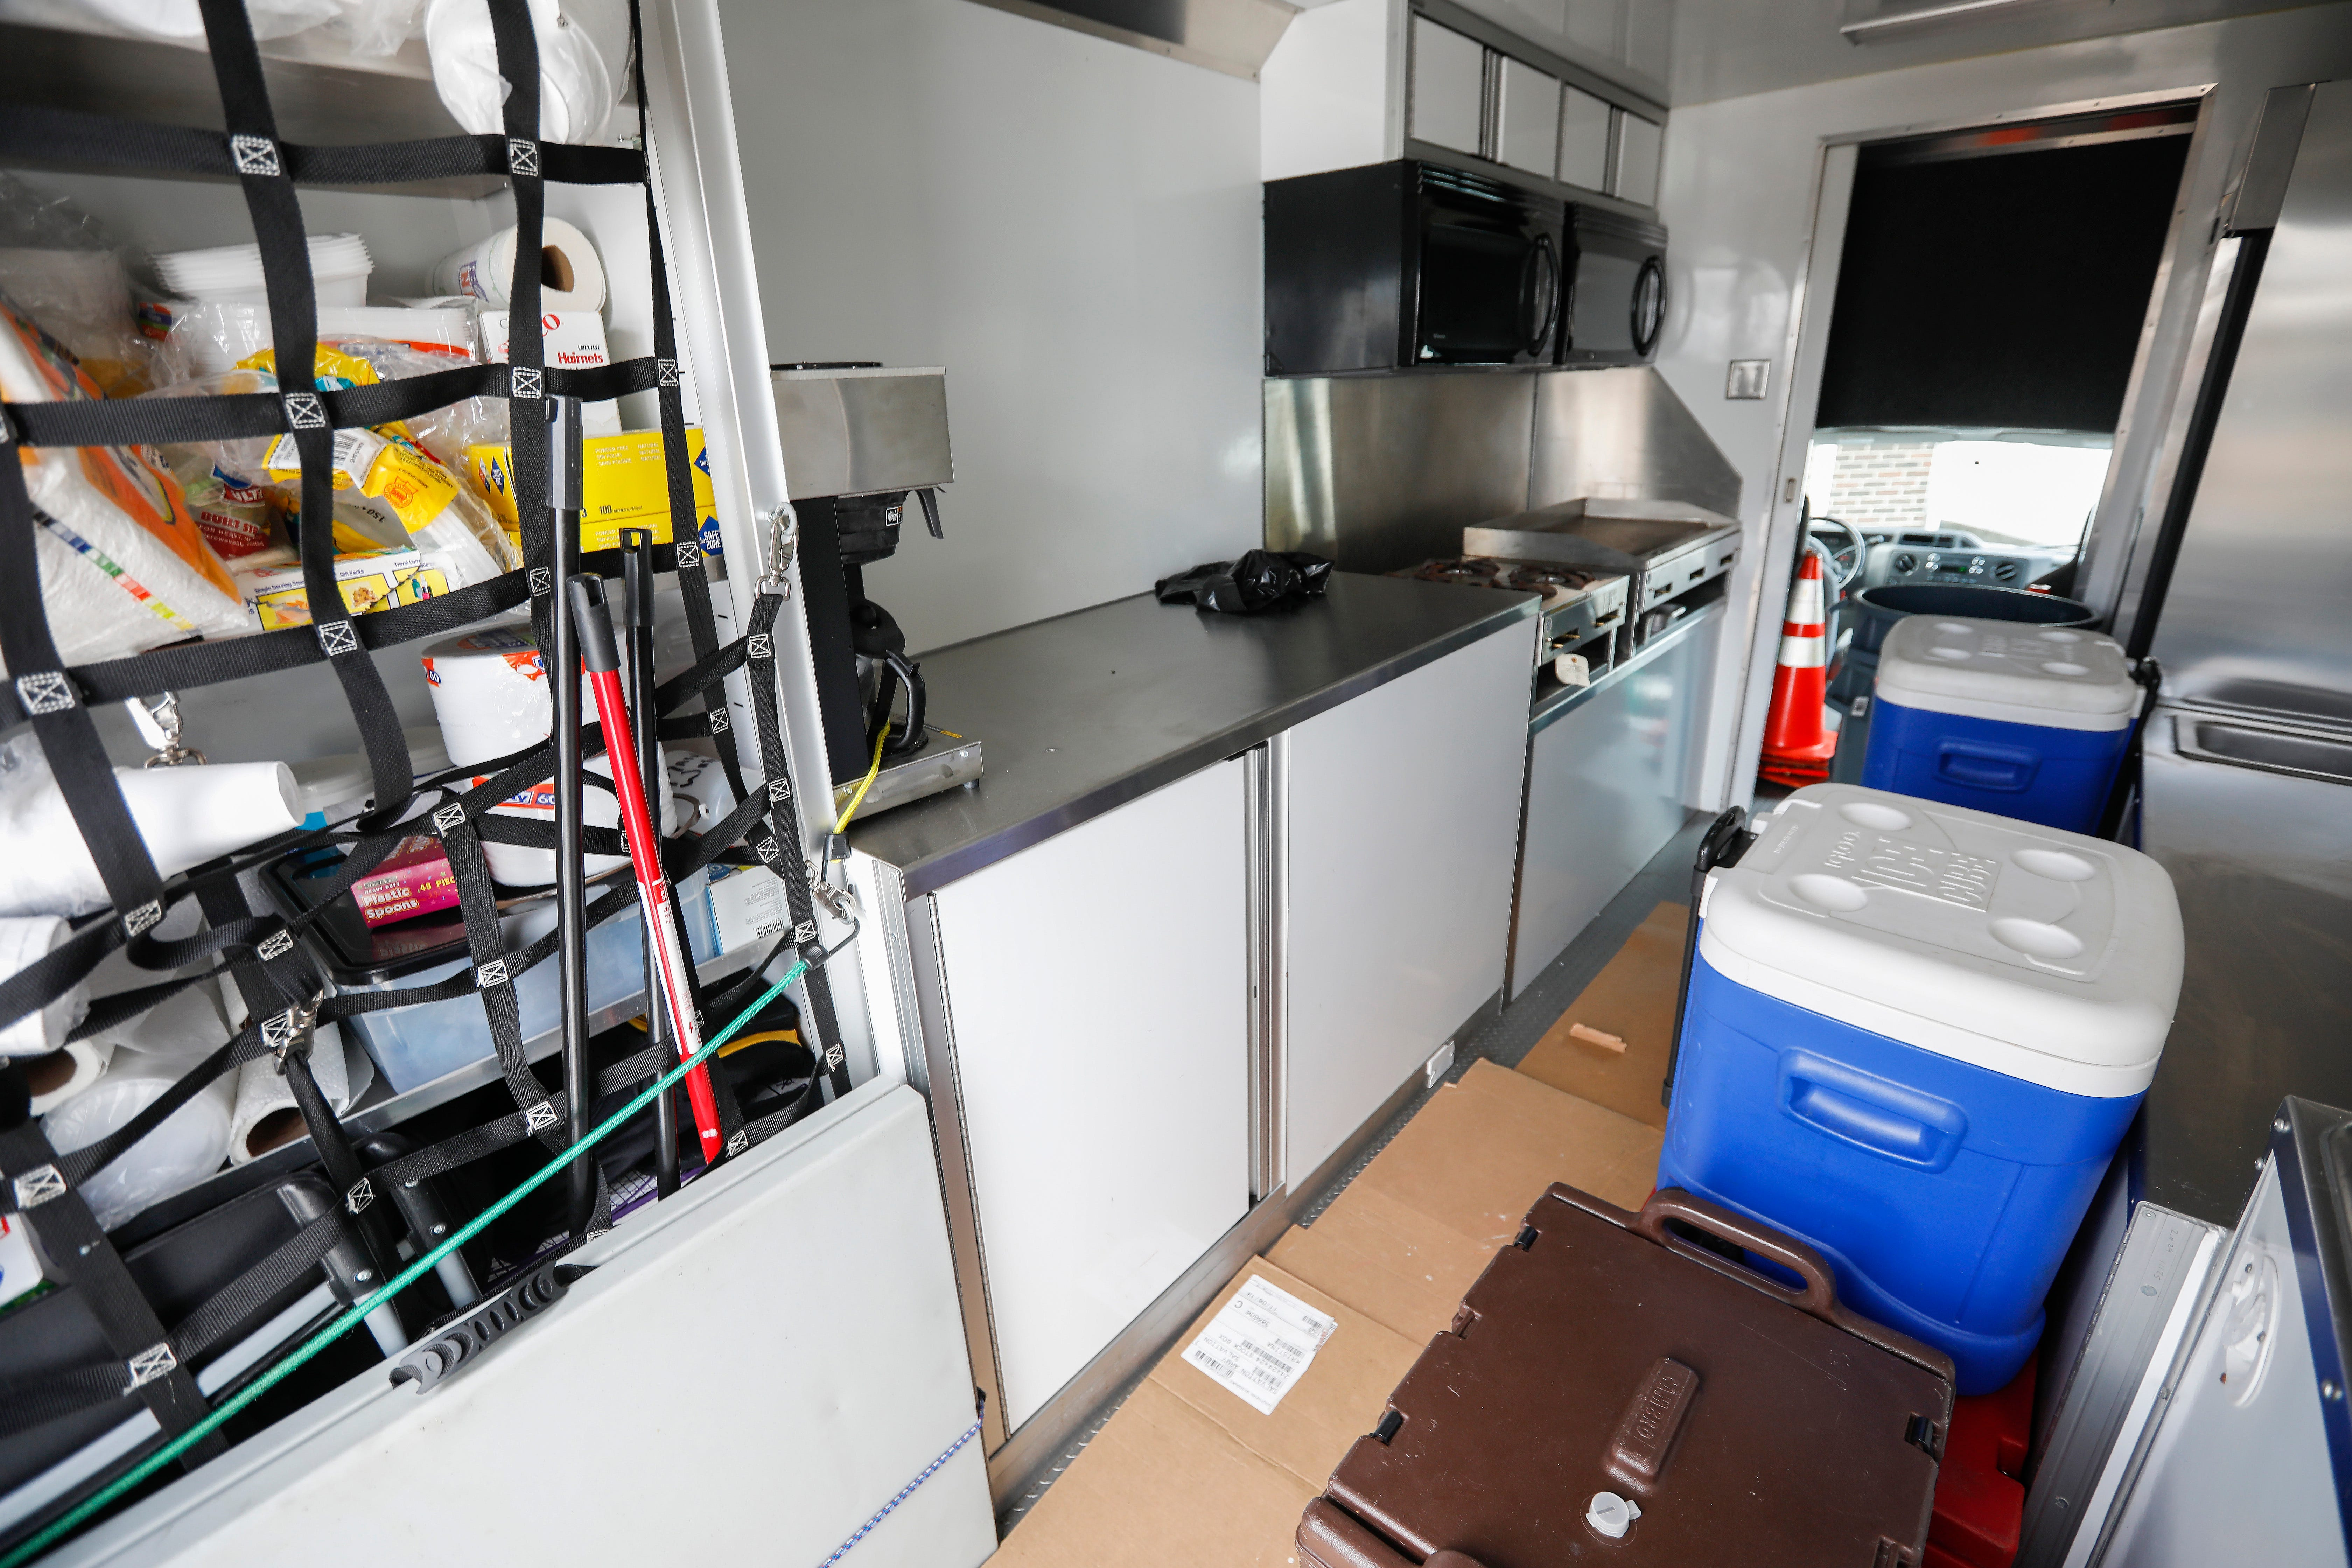 The Salvation Army Emergency Disaster Services Canteen will be visiting homeless camps in the evenings to provide for a hot meal and cup of coffee as well as get the word out about their cold weather shelters.